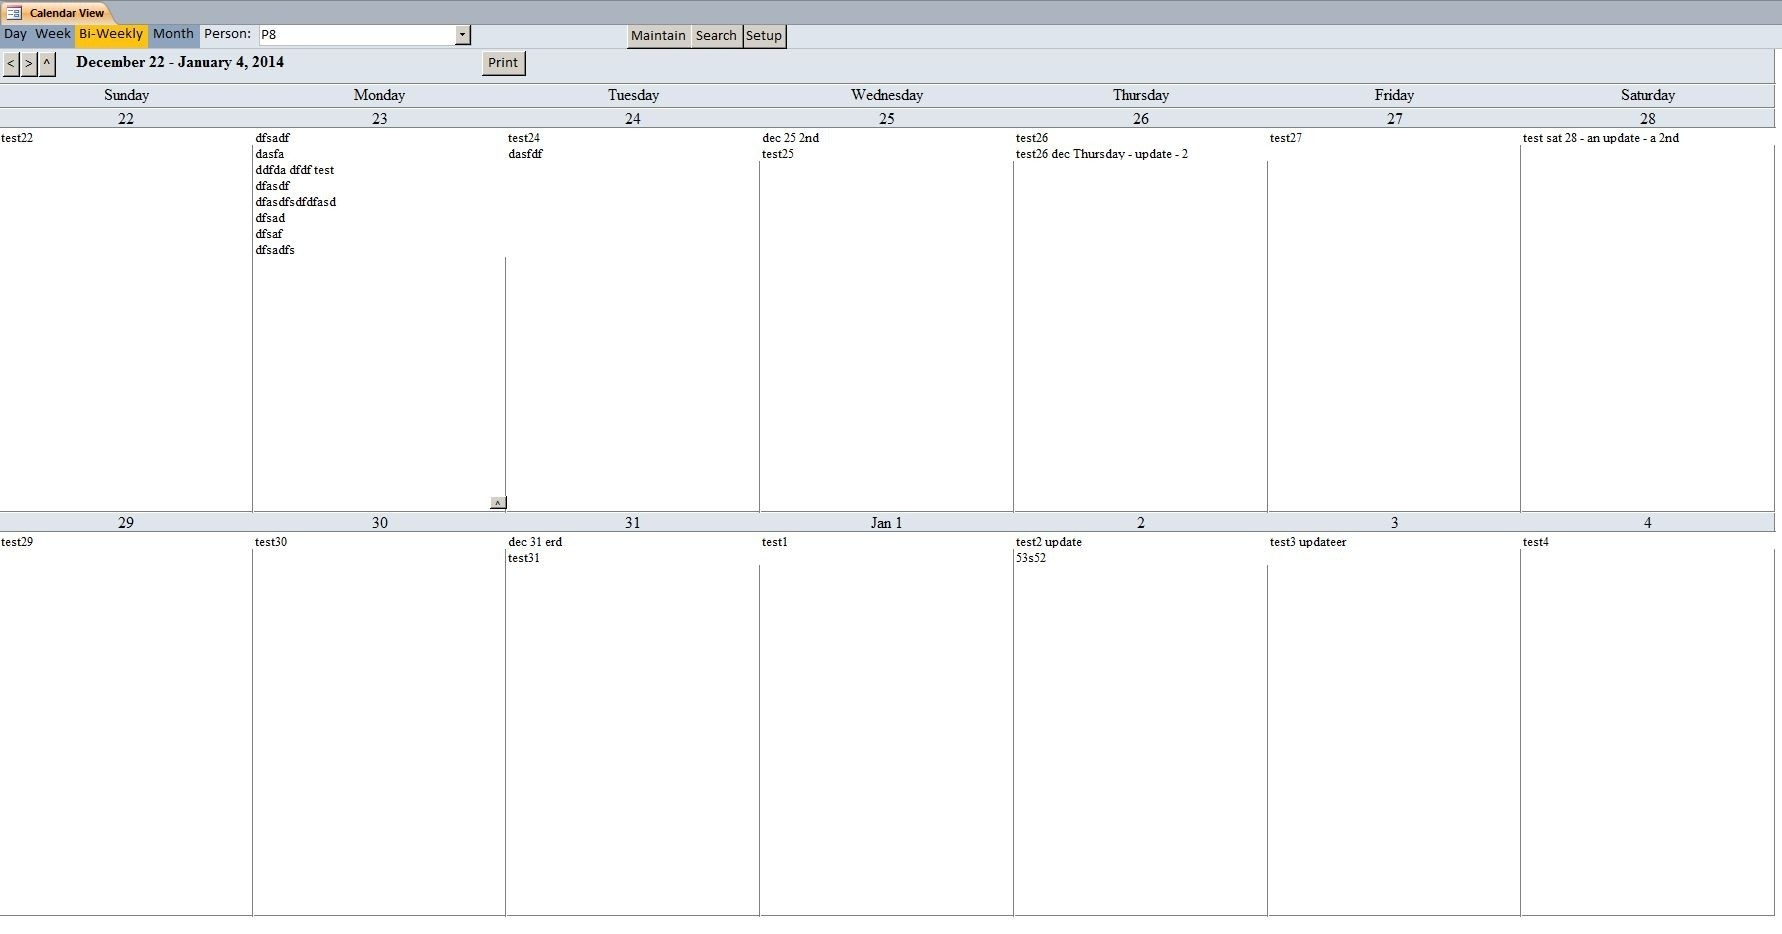 010 Template Ideas Weekly Calendar For Word Free Printable Templates for 2 Week Blank Calendar Template